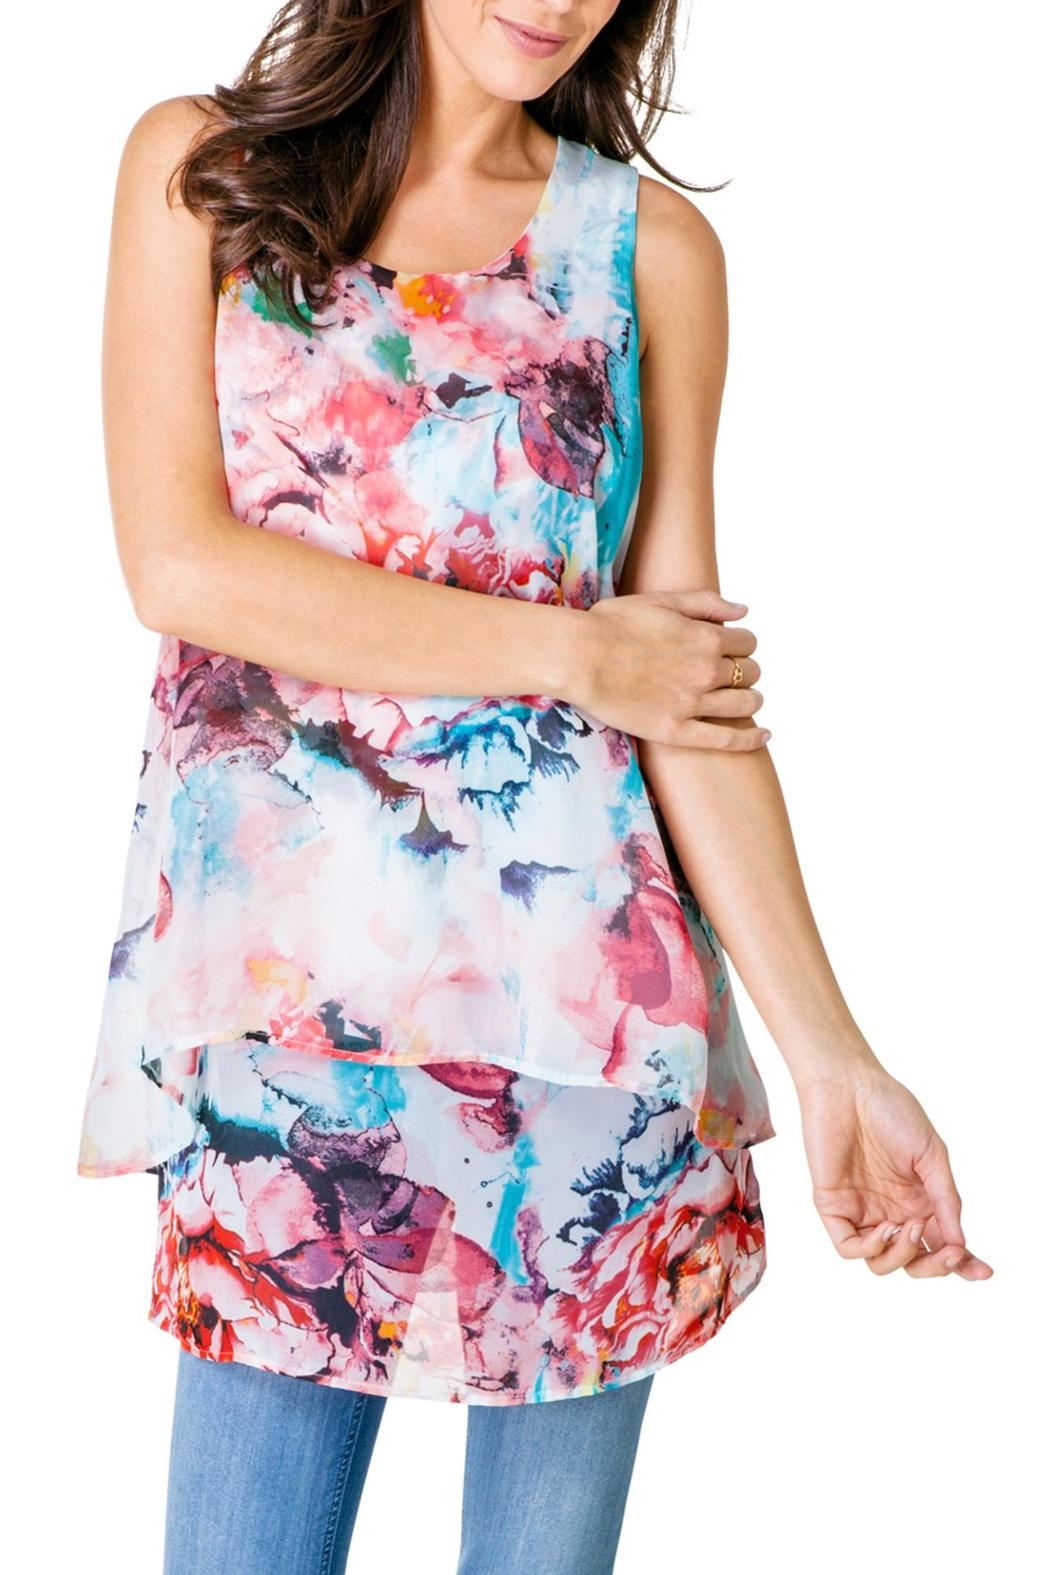 Yest Sleeveless Floral Blouse - Main Image